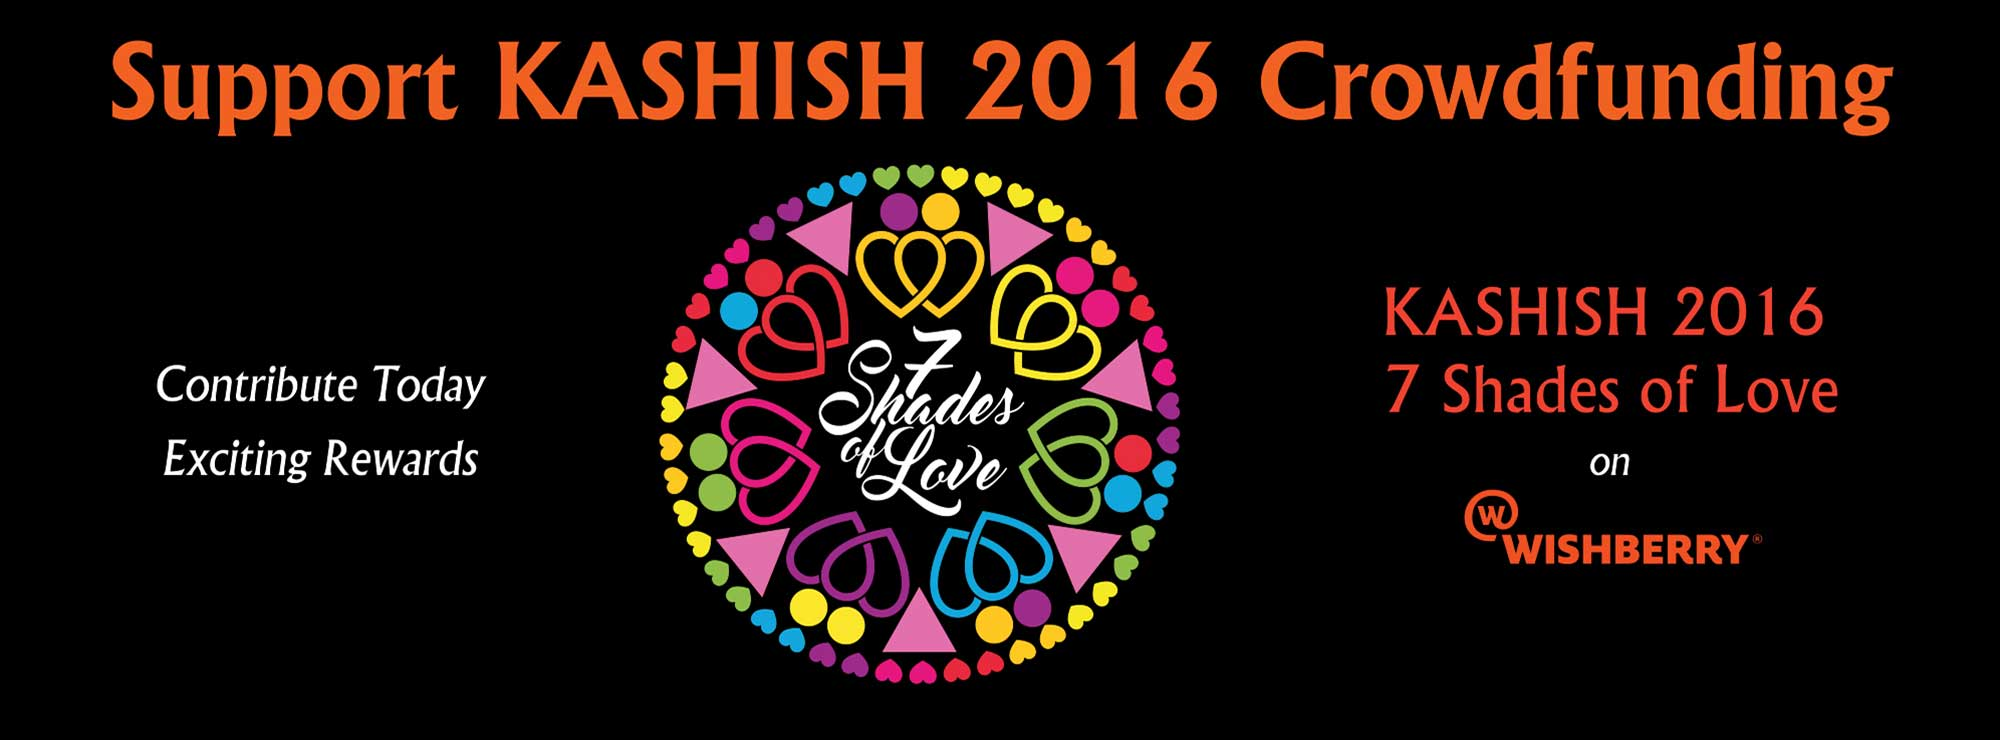 Kashish has raised funds via Wishberry